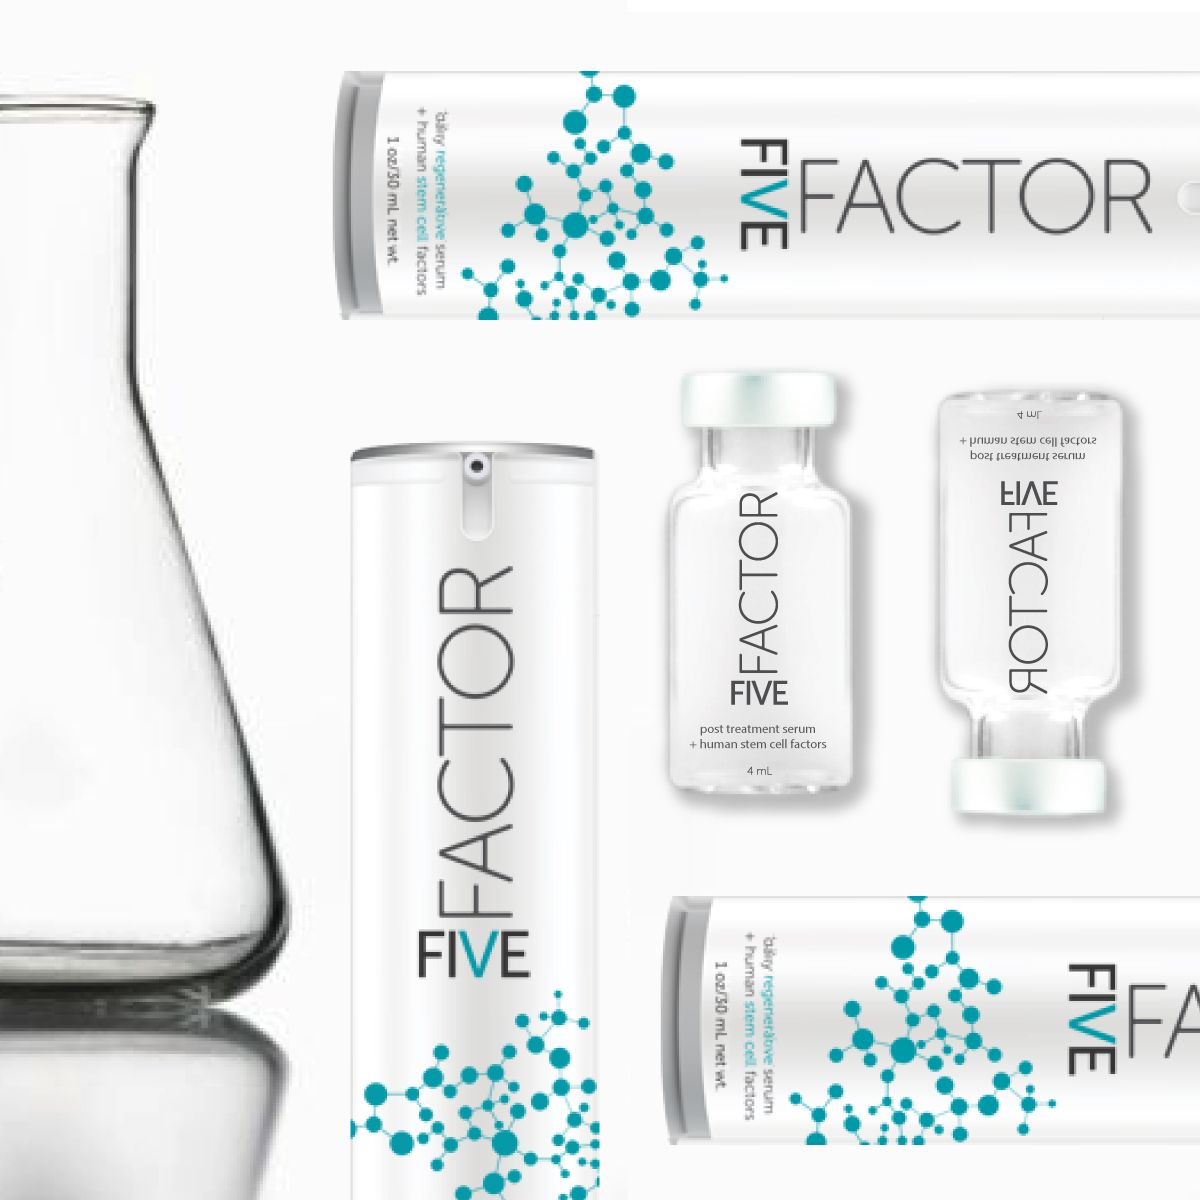 There S Nothing Pseudo About Our Science Skincare Antiaging Anti Aging Skin Products Skin Care Anti Aging Skin Care